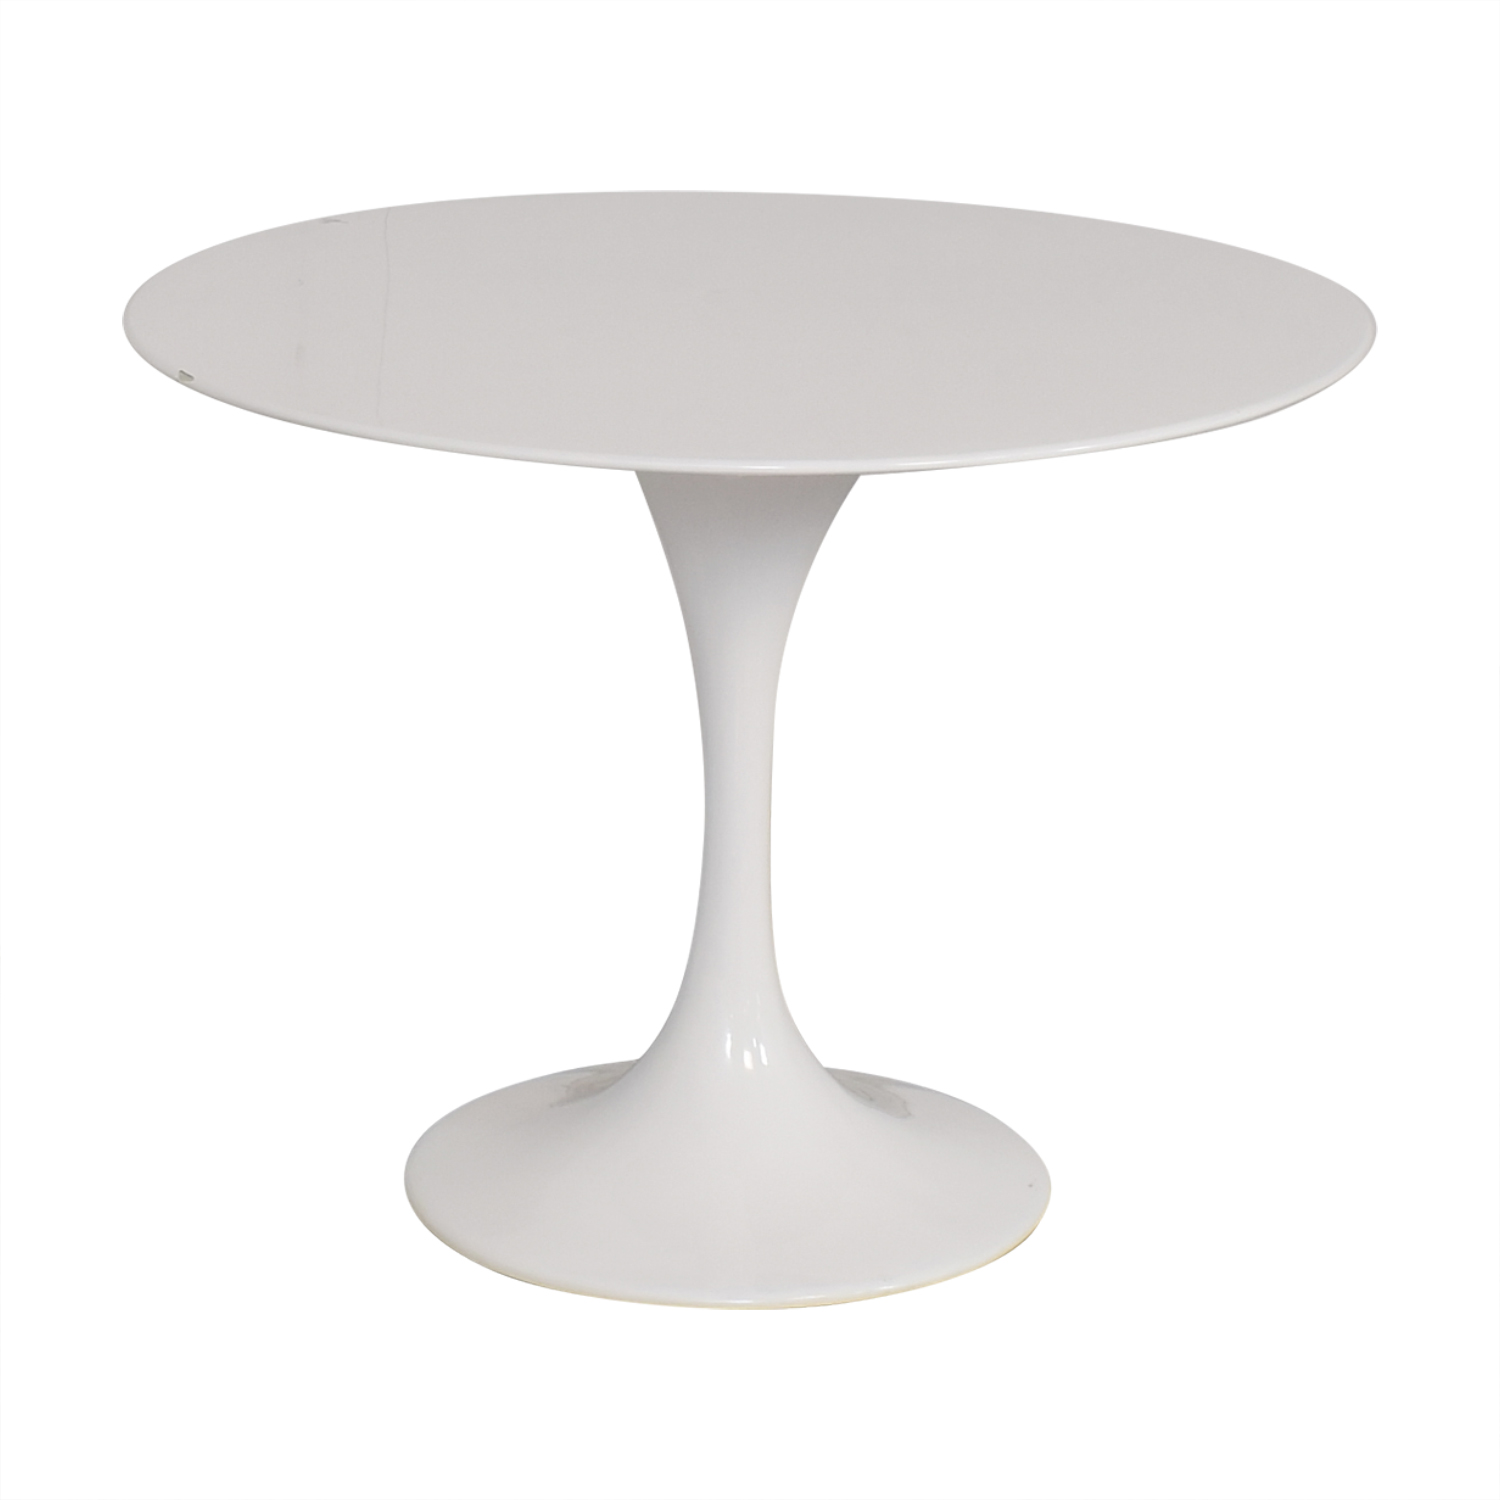 LexMod LexMod Lippa Round Dining Table on sale